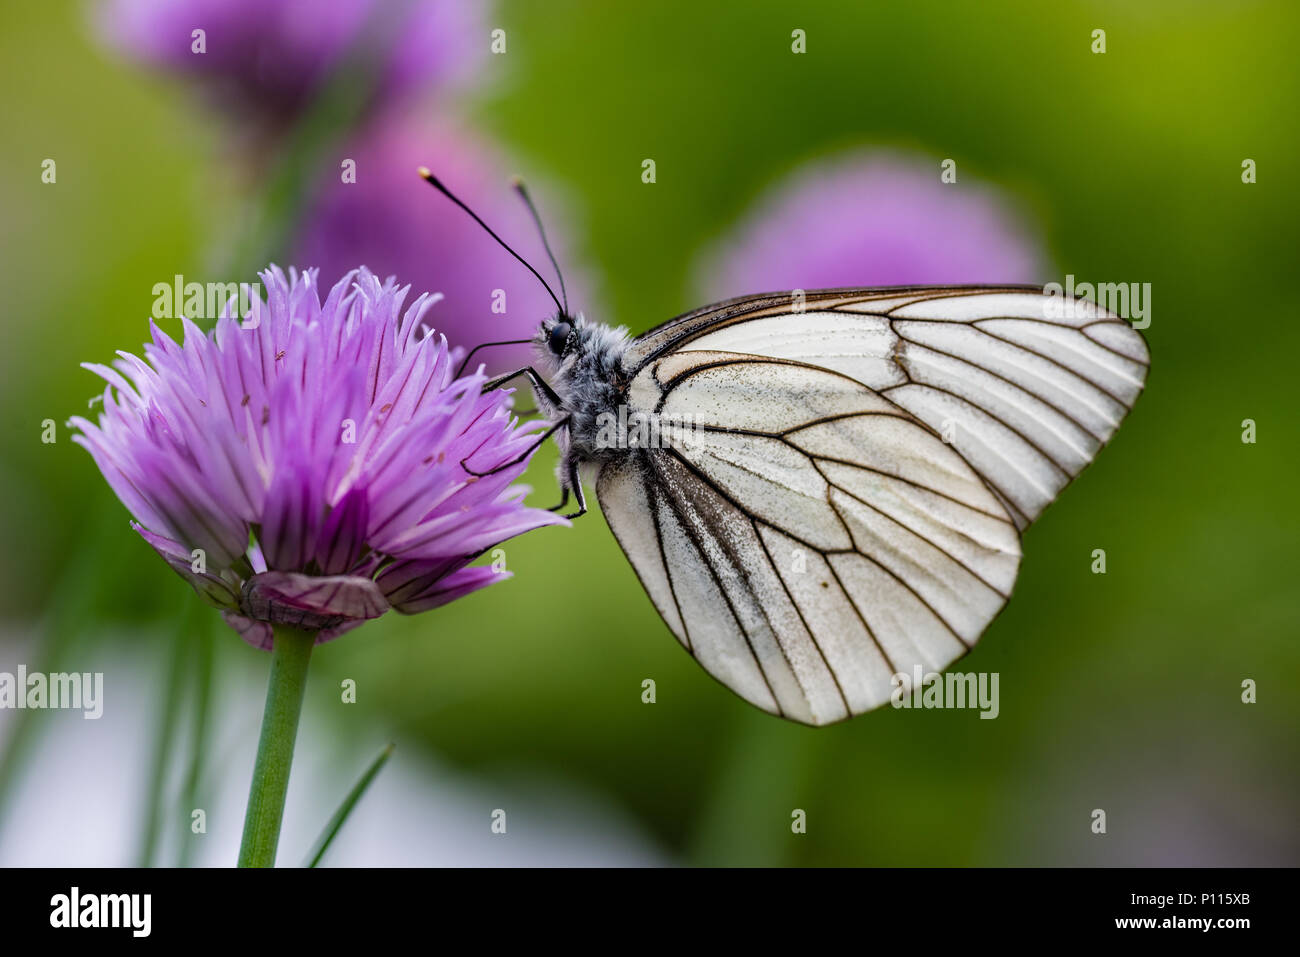 Black veined White butterlfy sitting on a flower of a chive - Stock Image